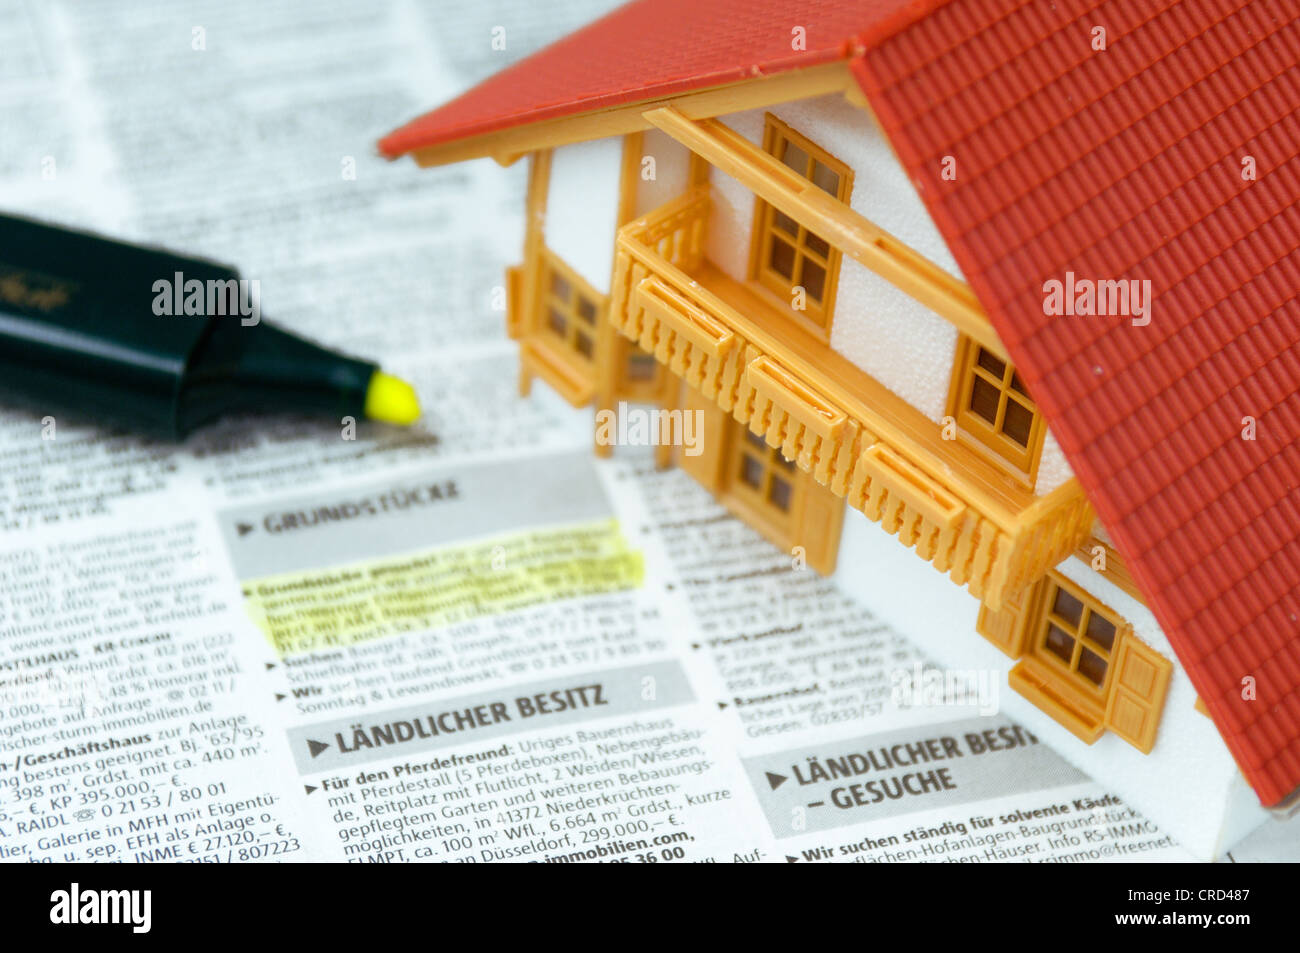 model of a house on a plot request - Stock Image